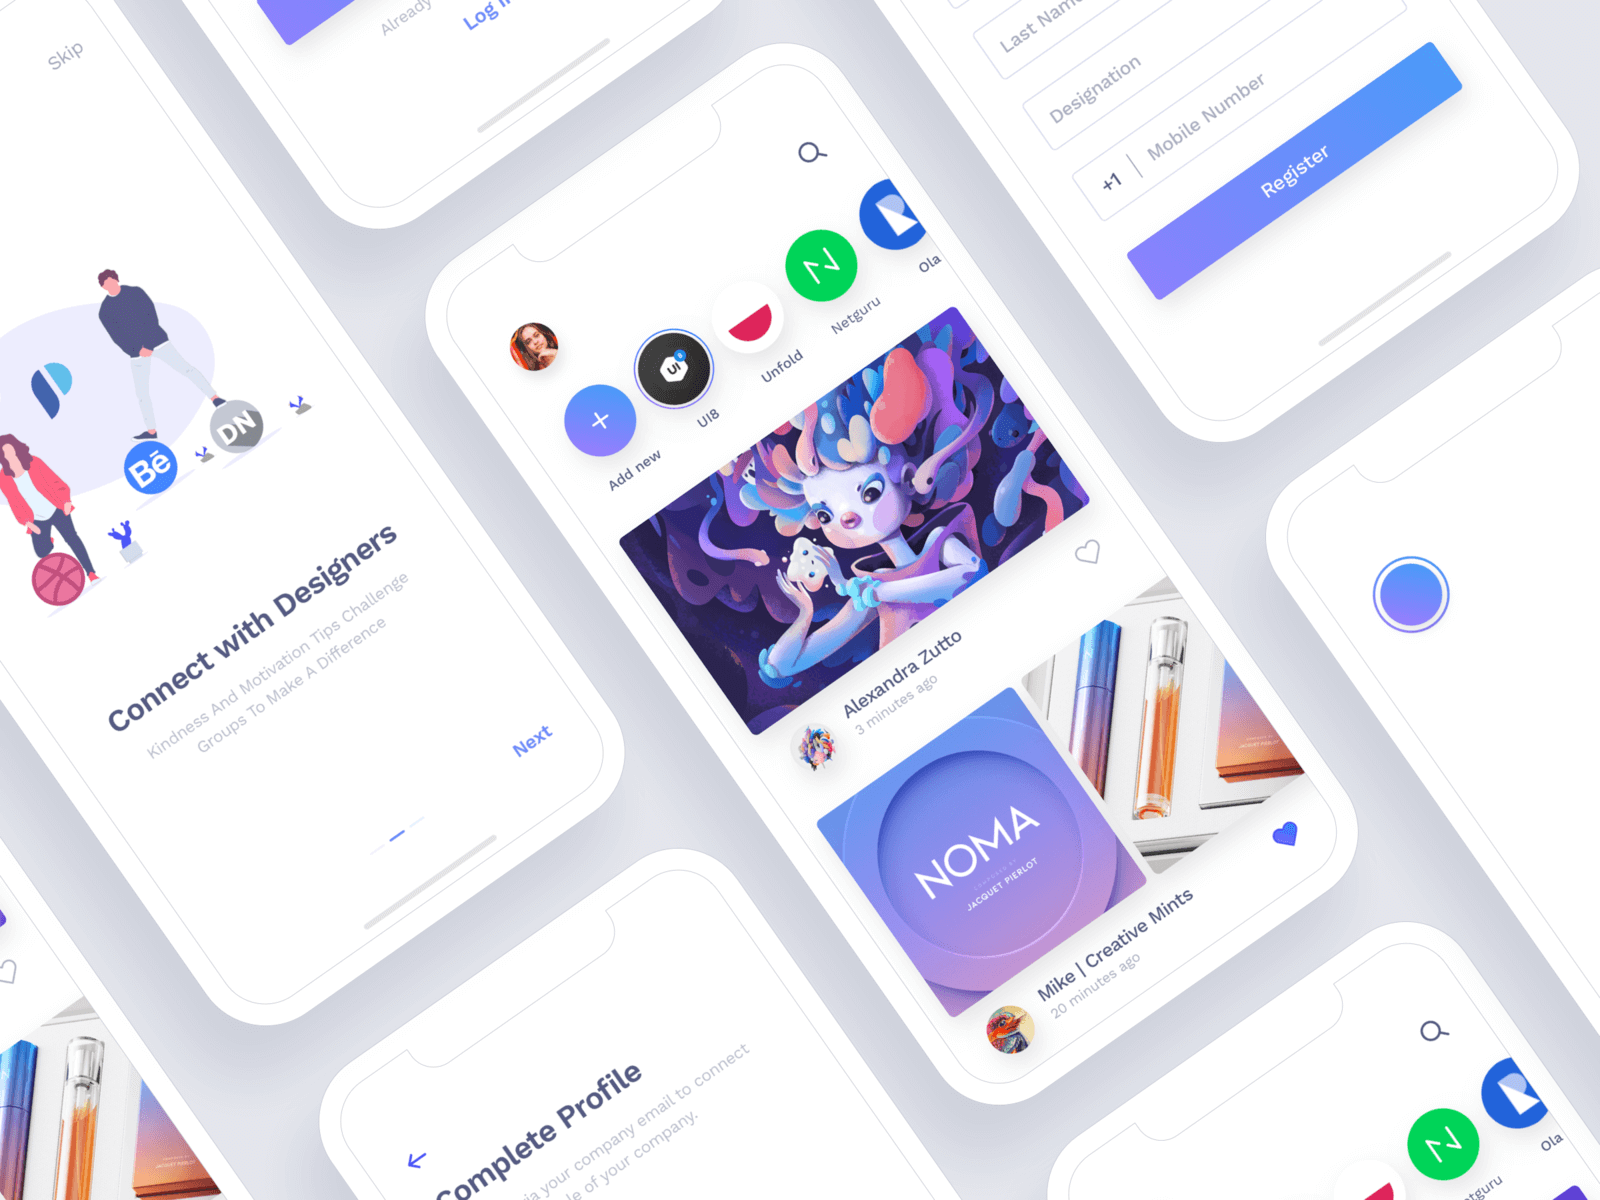 Social App For Designers cover image